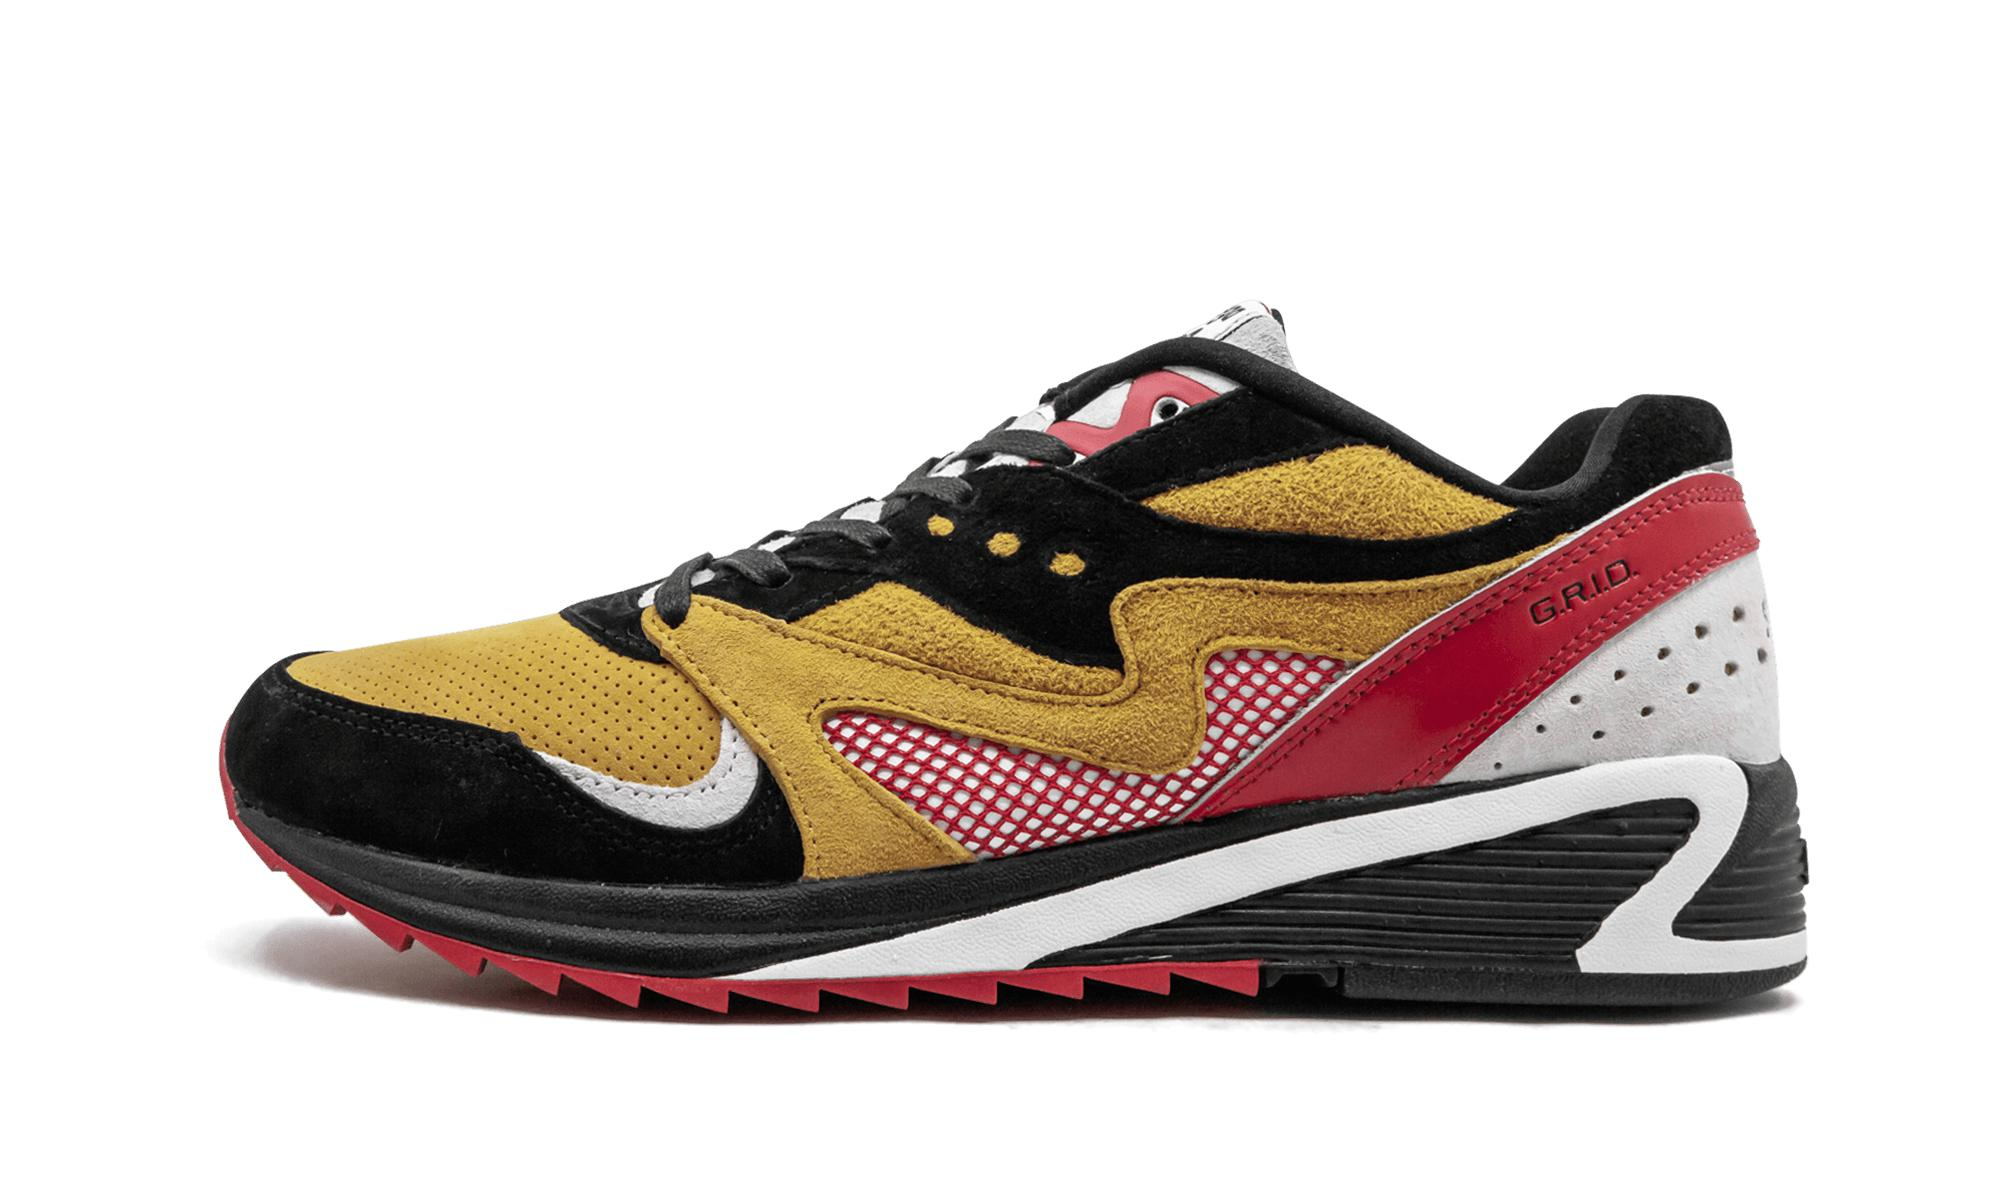 425e4452f957 Lyst - Saucony Grid 8000 Cl in Black